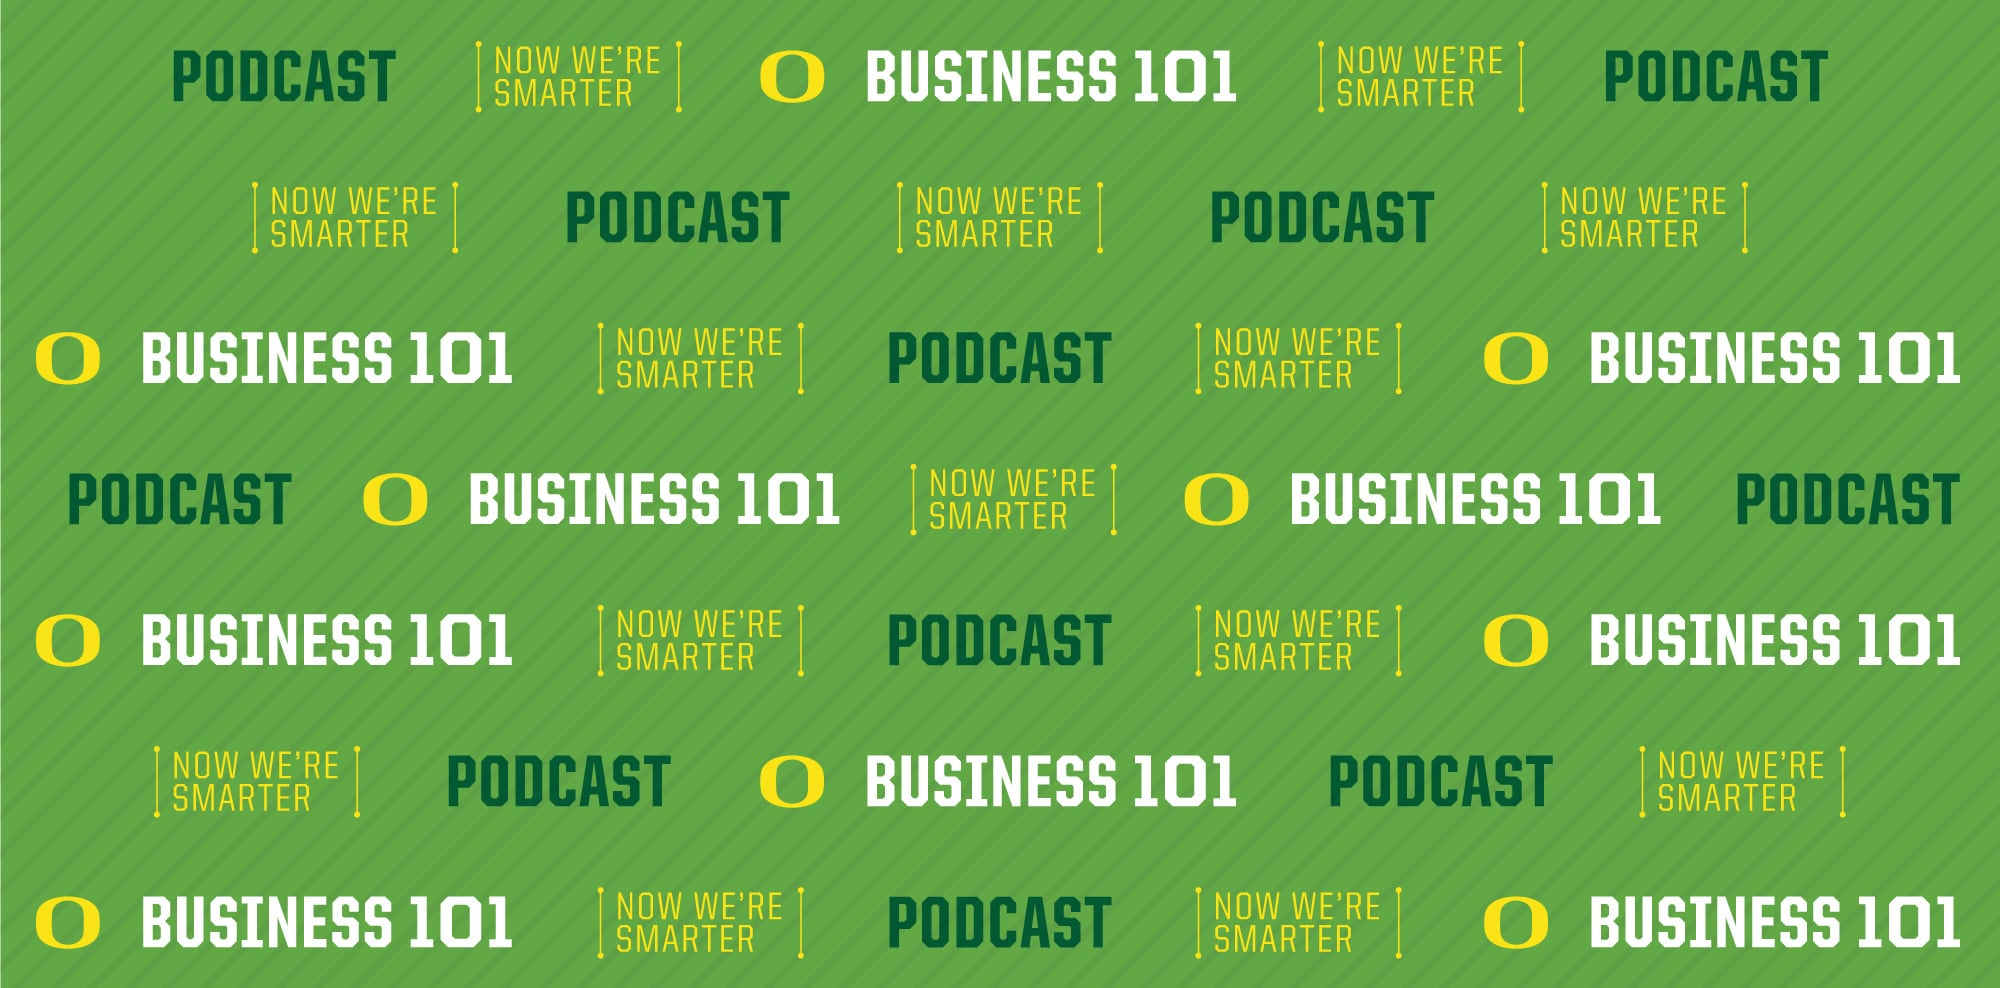 Illustration with the Business 1O1 podcast logo, Oregon O, and the word Podcast on a green background